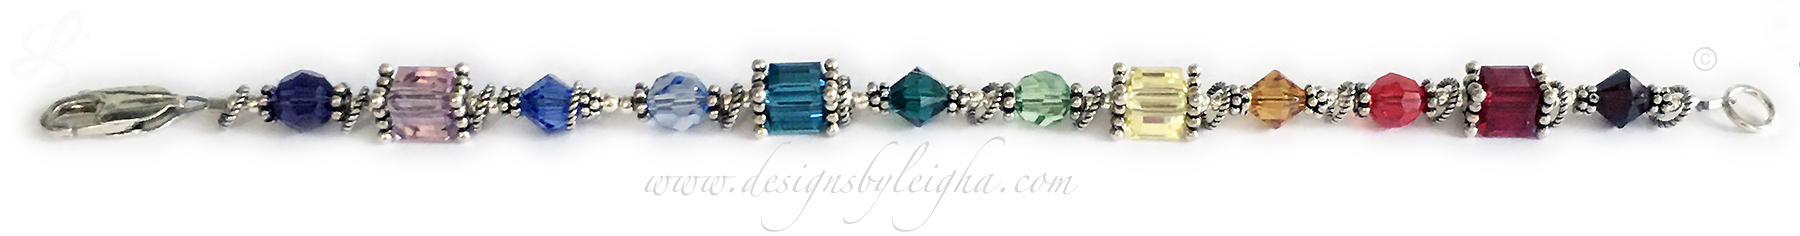 12 Stone Birthstone Bracelet by Leigha - This is Leigha's favorite Design!!! - DBL-BB12